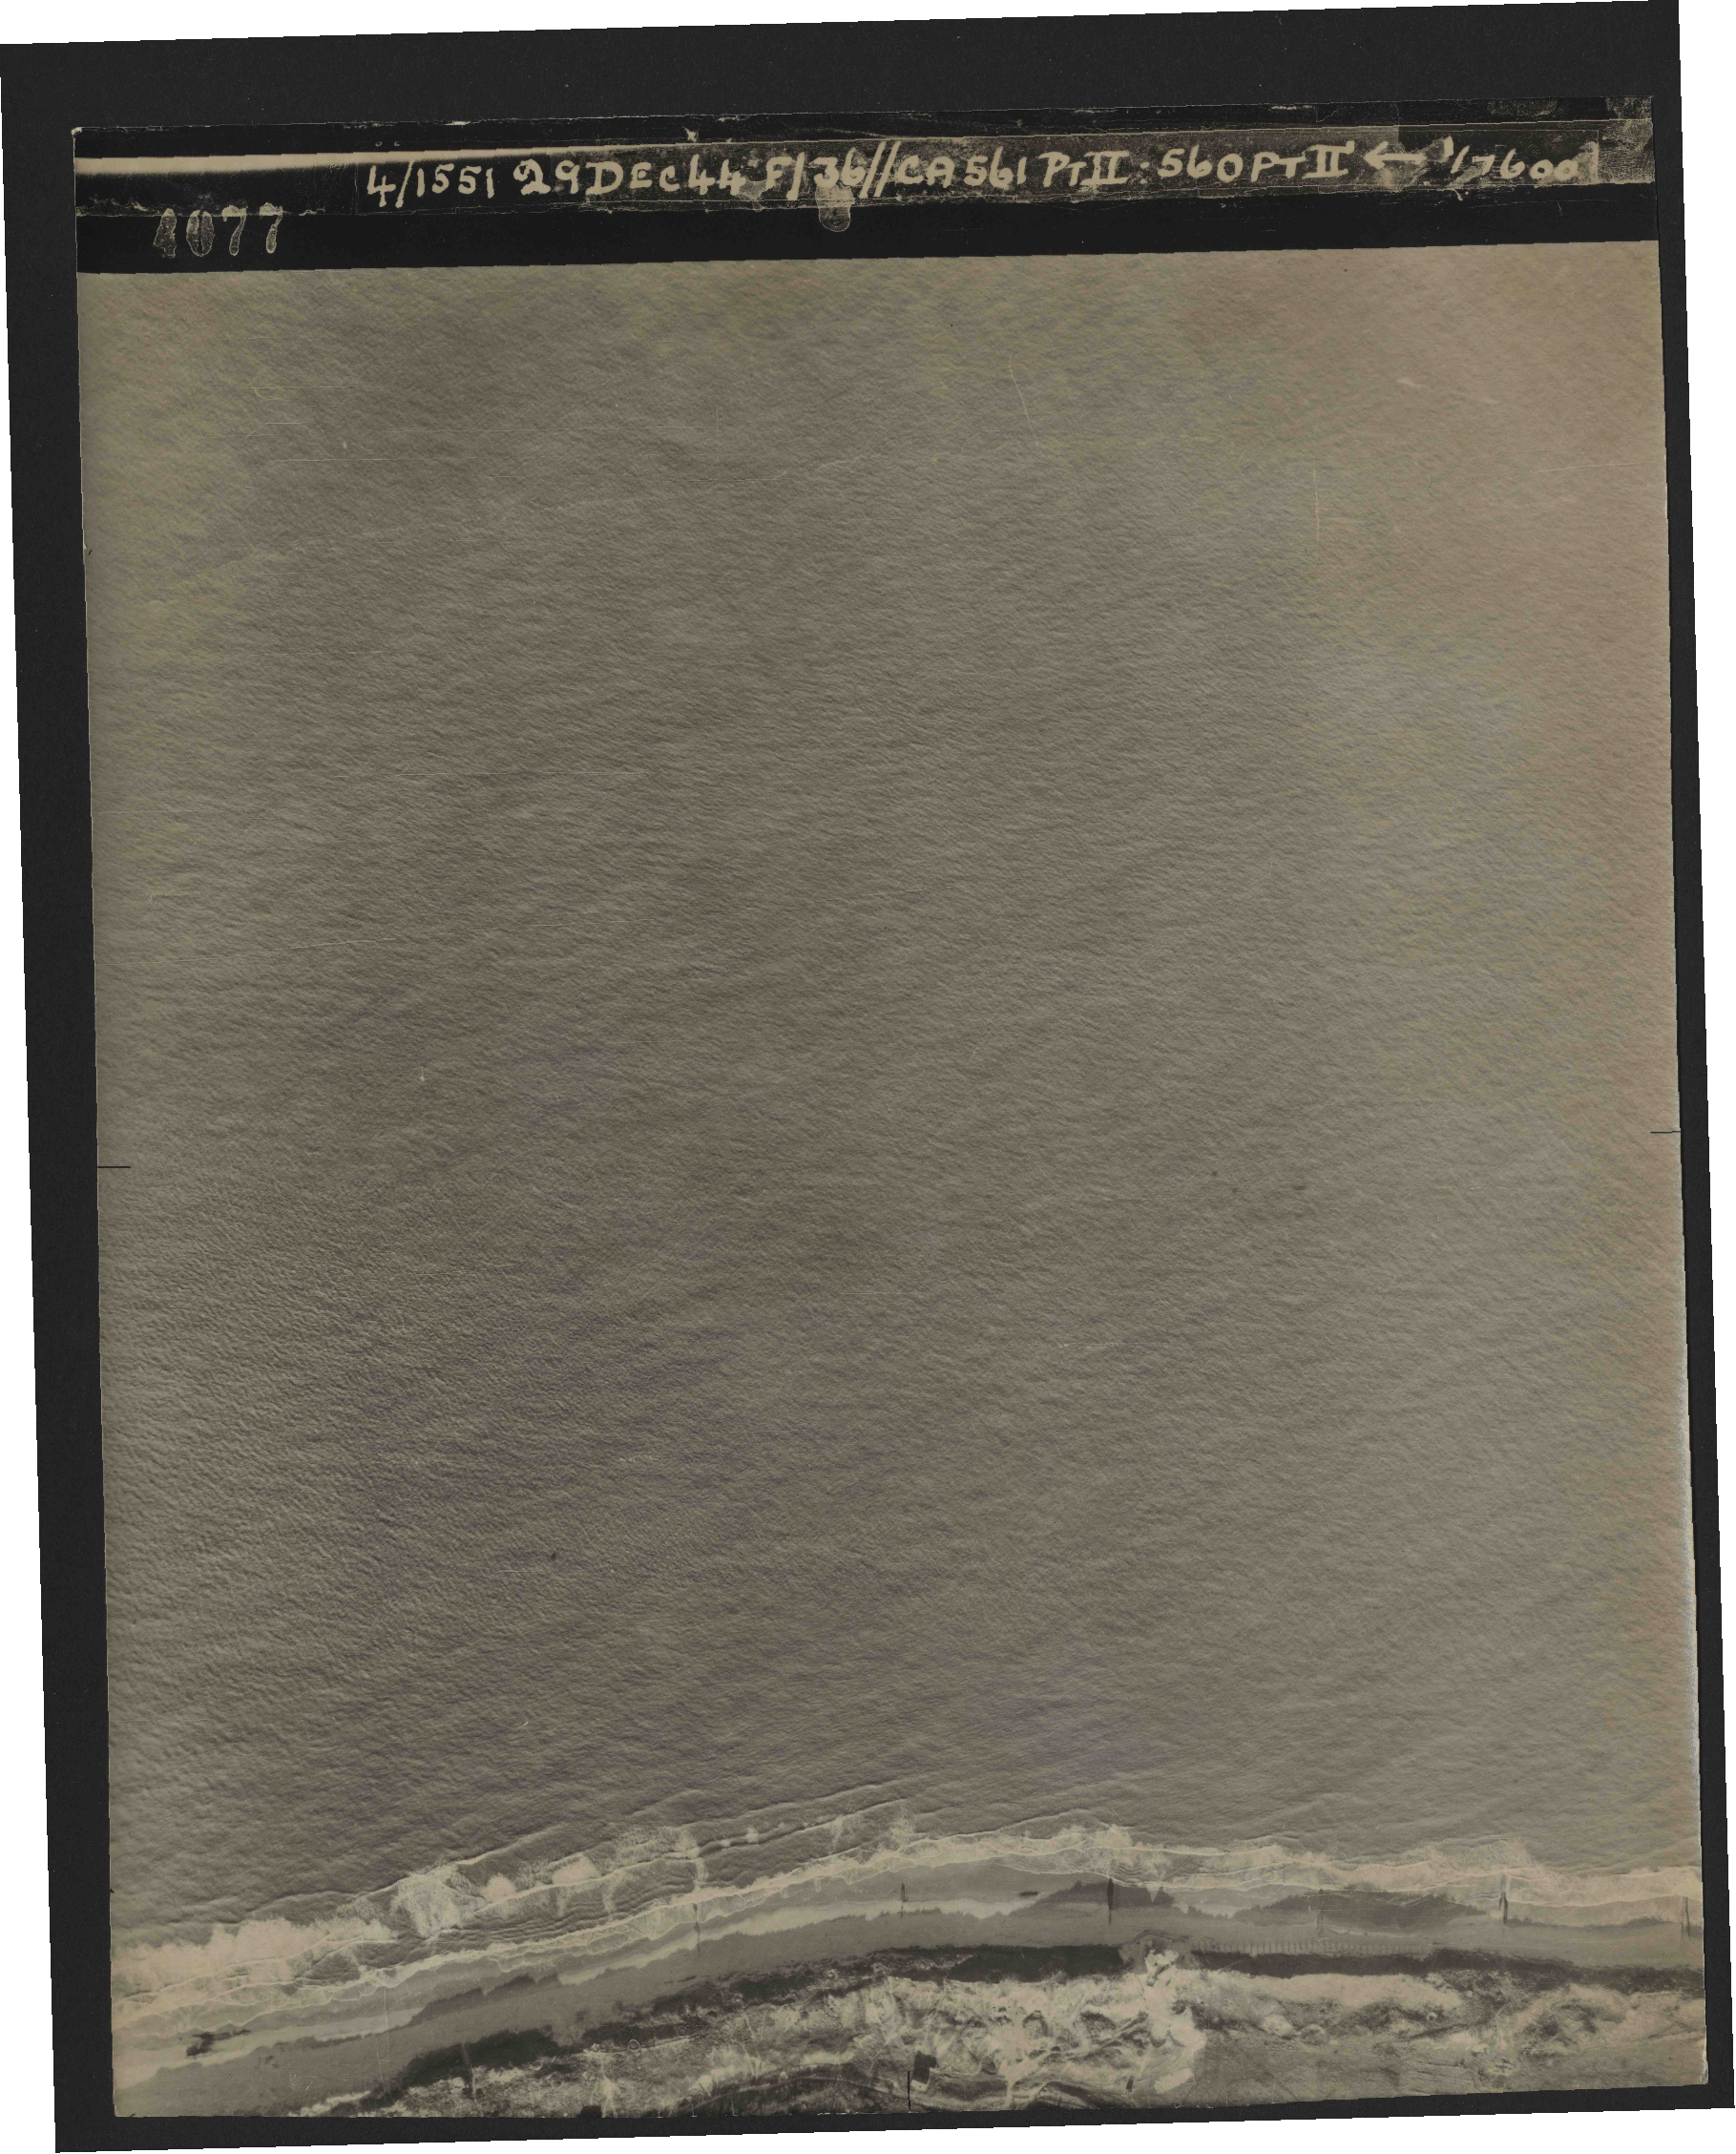 Collection RAF aerial photos 1940-1945 - flight 092, run 05, photo 4077